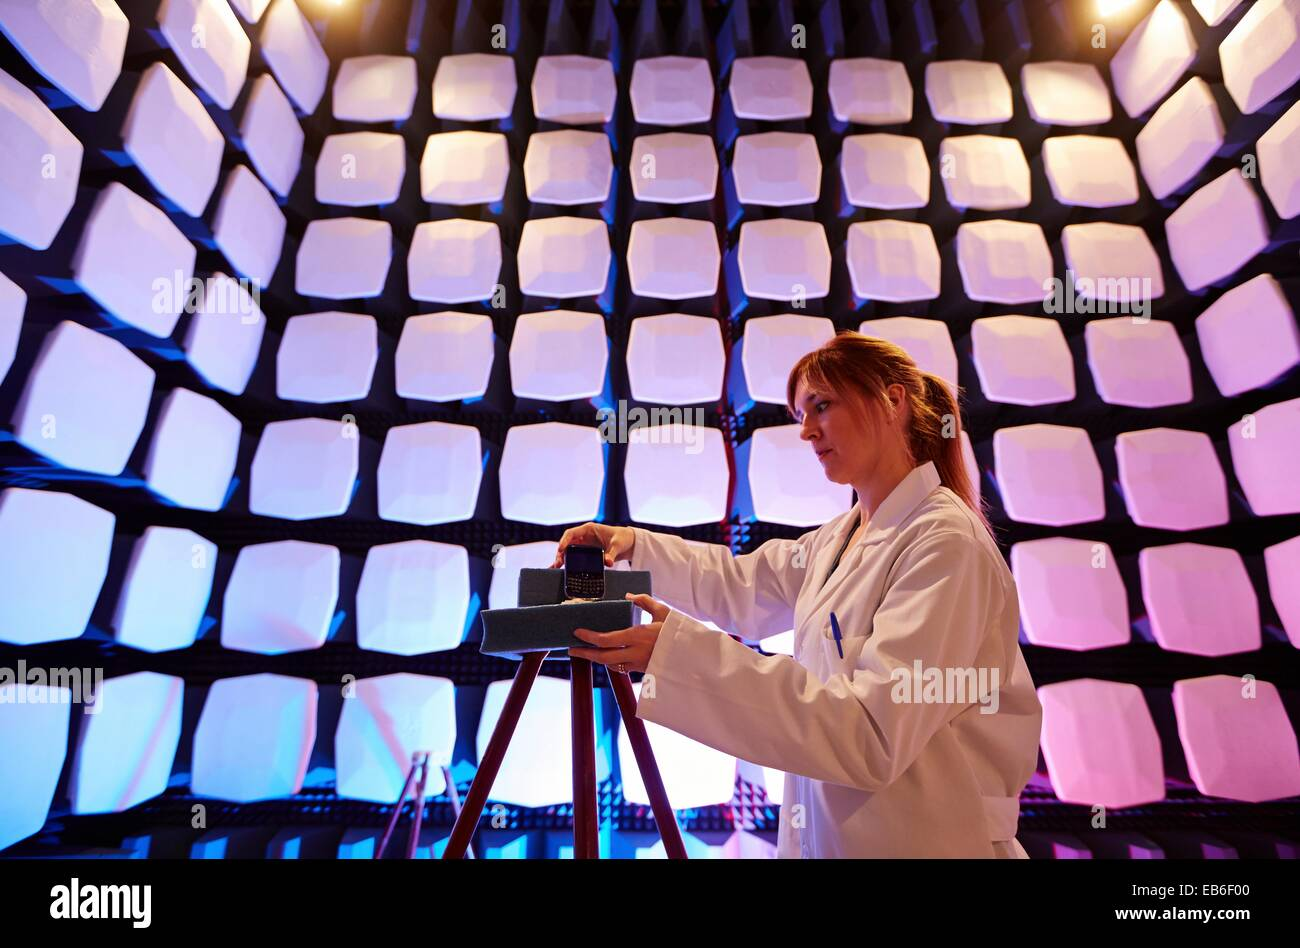 Anechoic Chamber Emc Telecom Lab Certification Low Voltage Stock